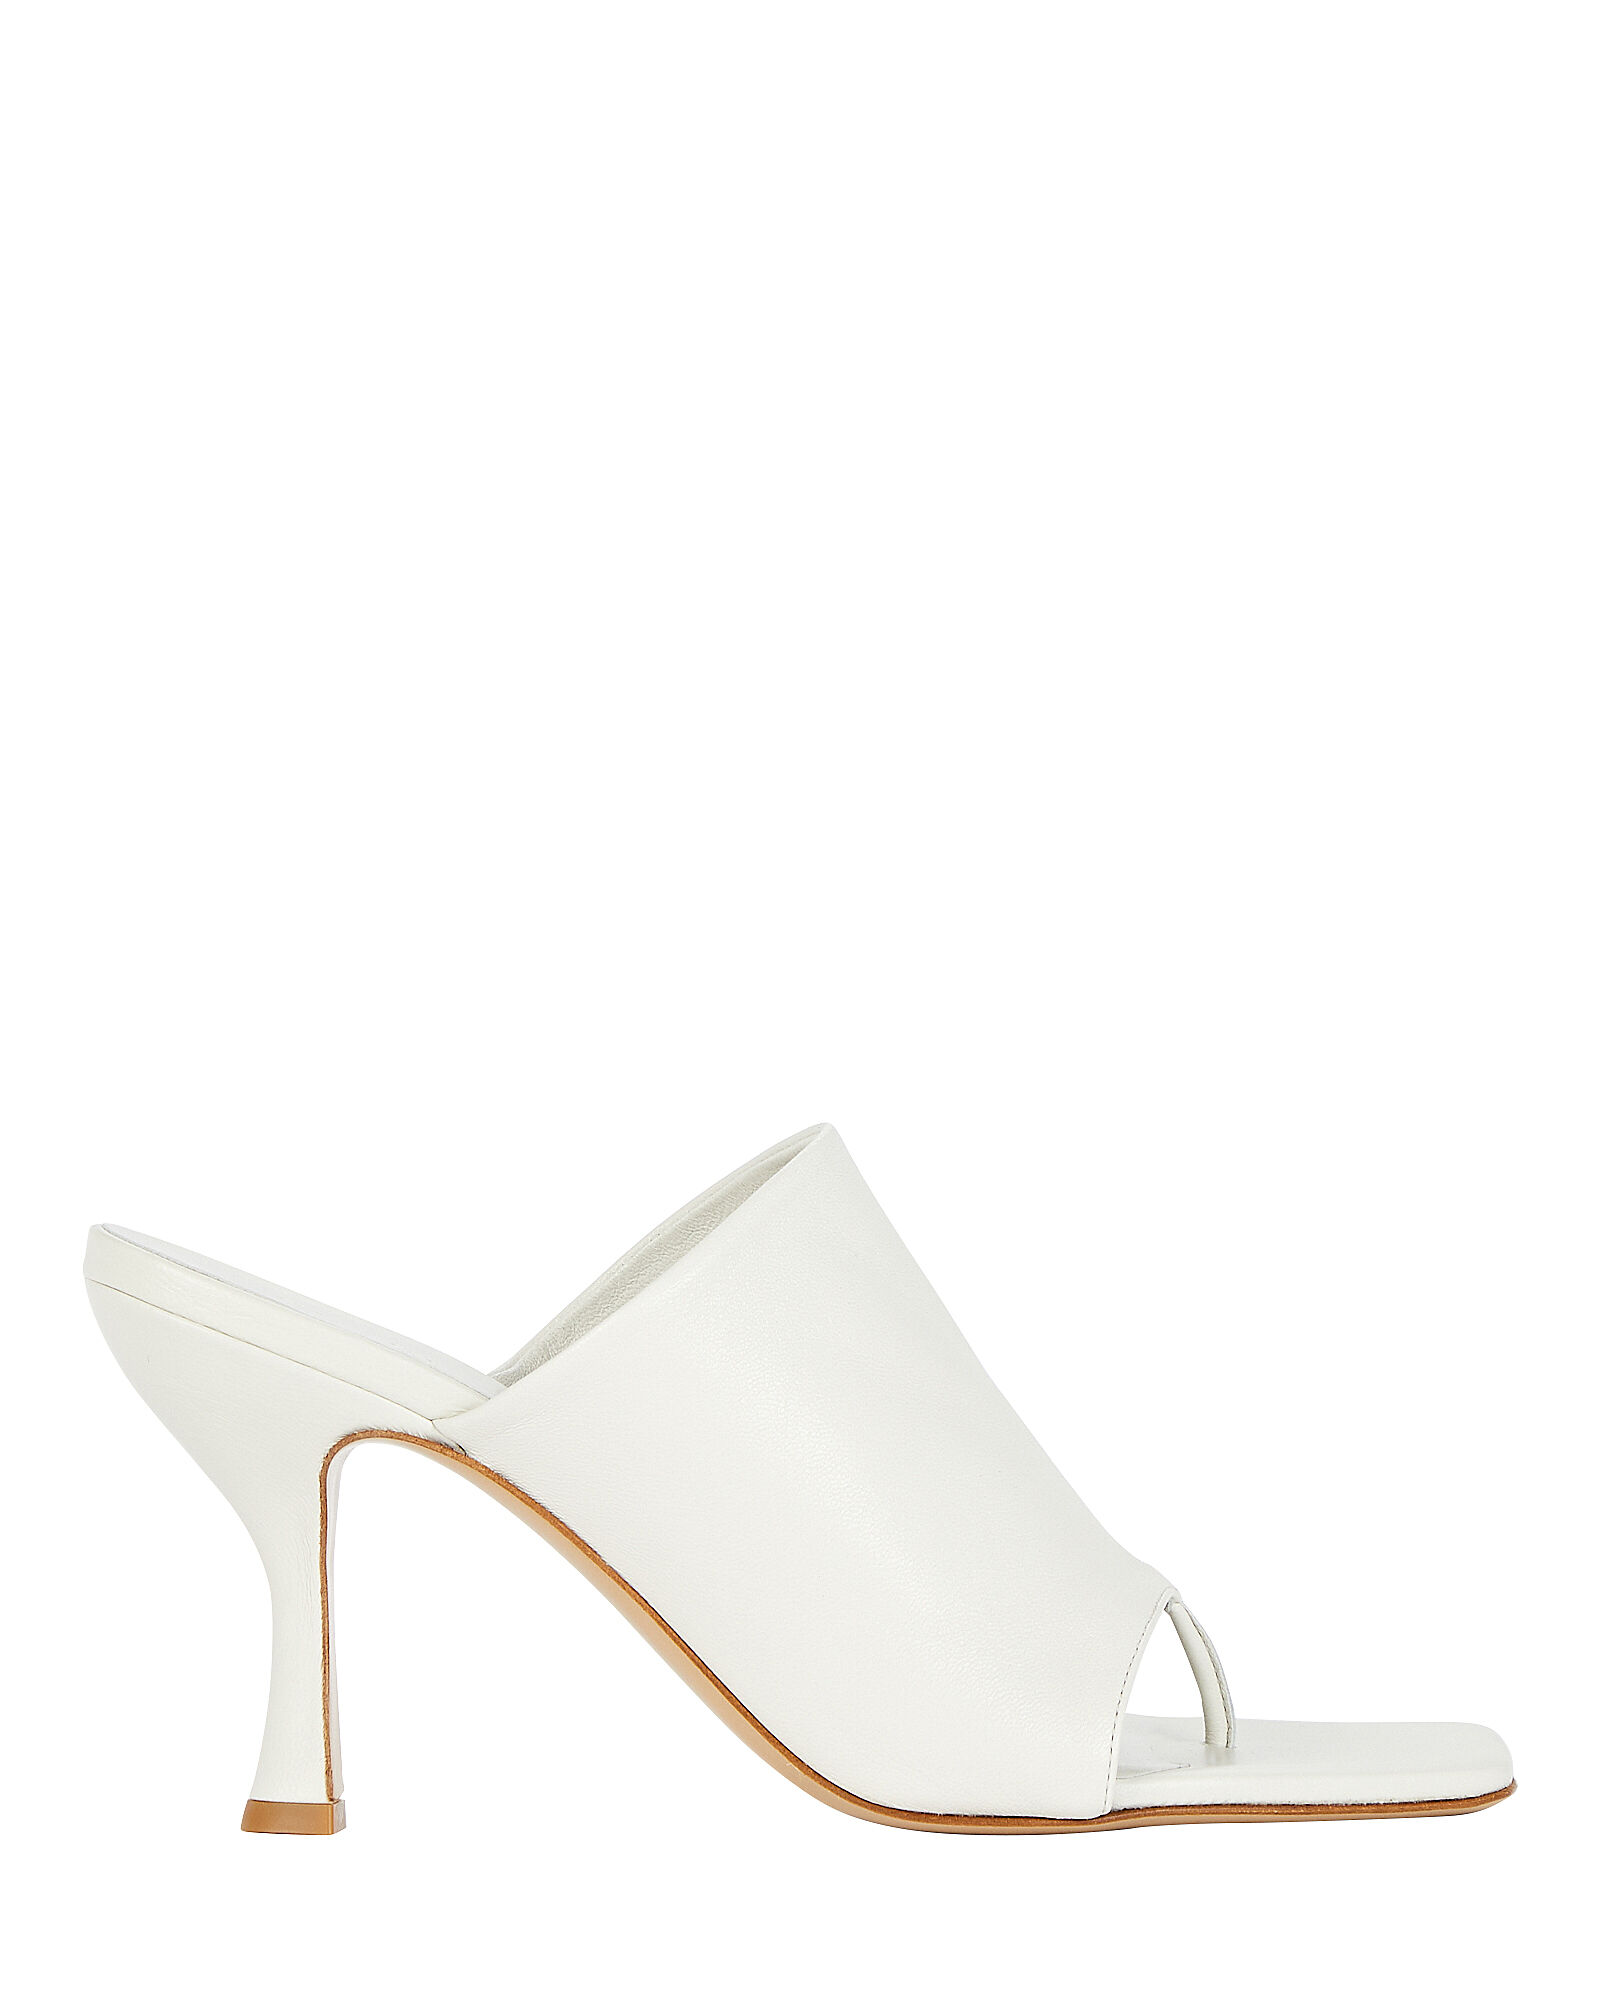 x Pernille Teisbaek Leather Thong Sandals, WHITE, hi-res